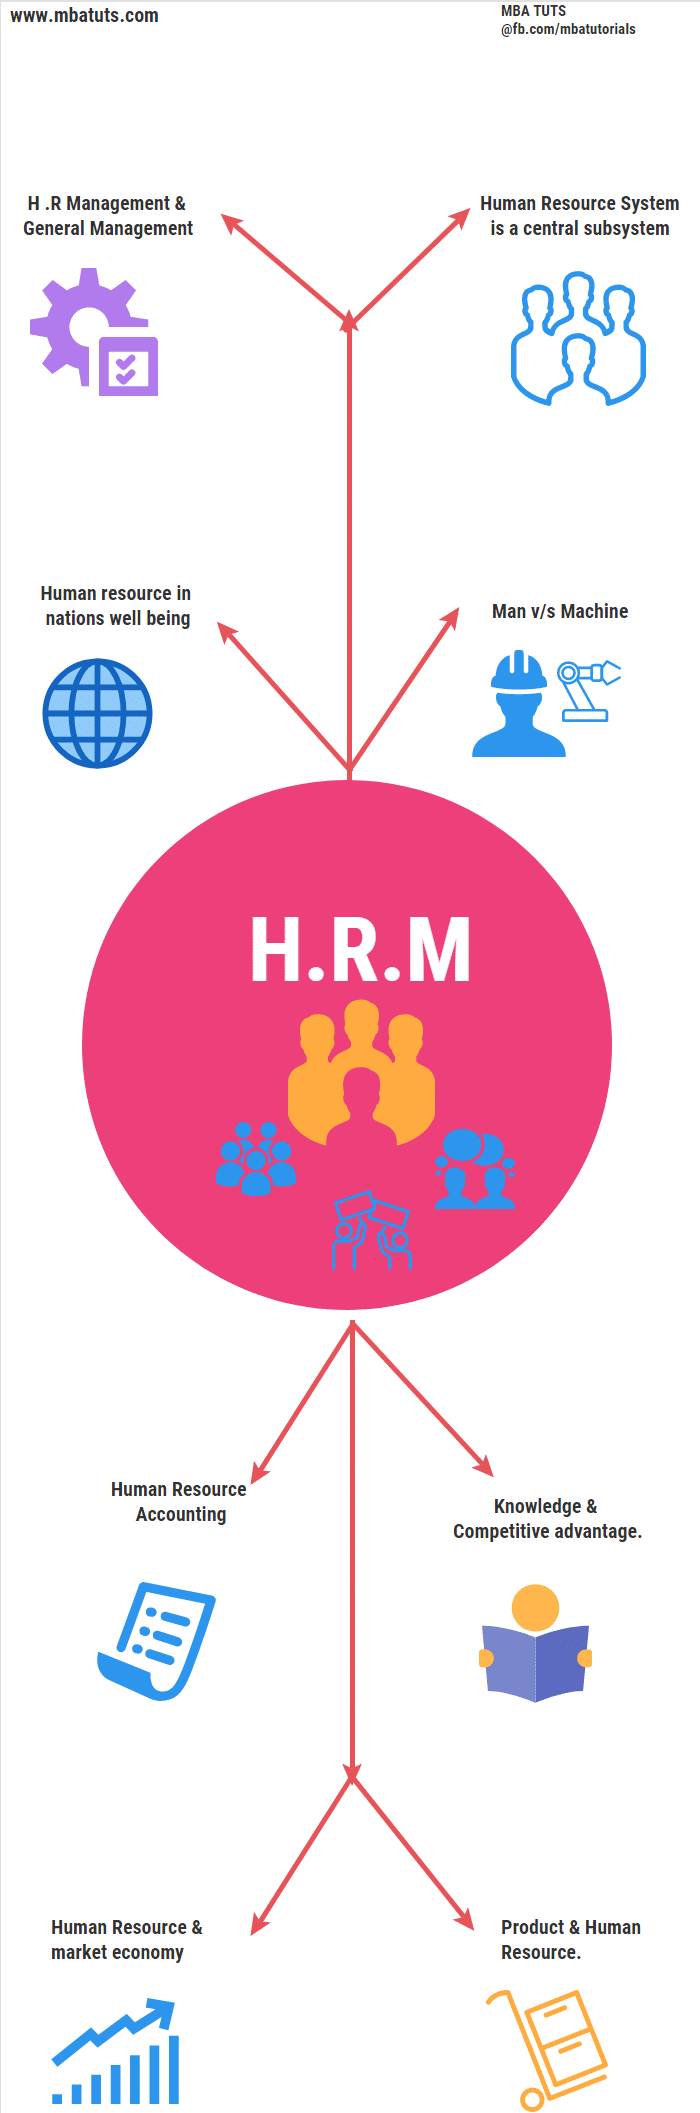 SIGNIFICANCE OF HRM